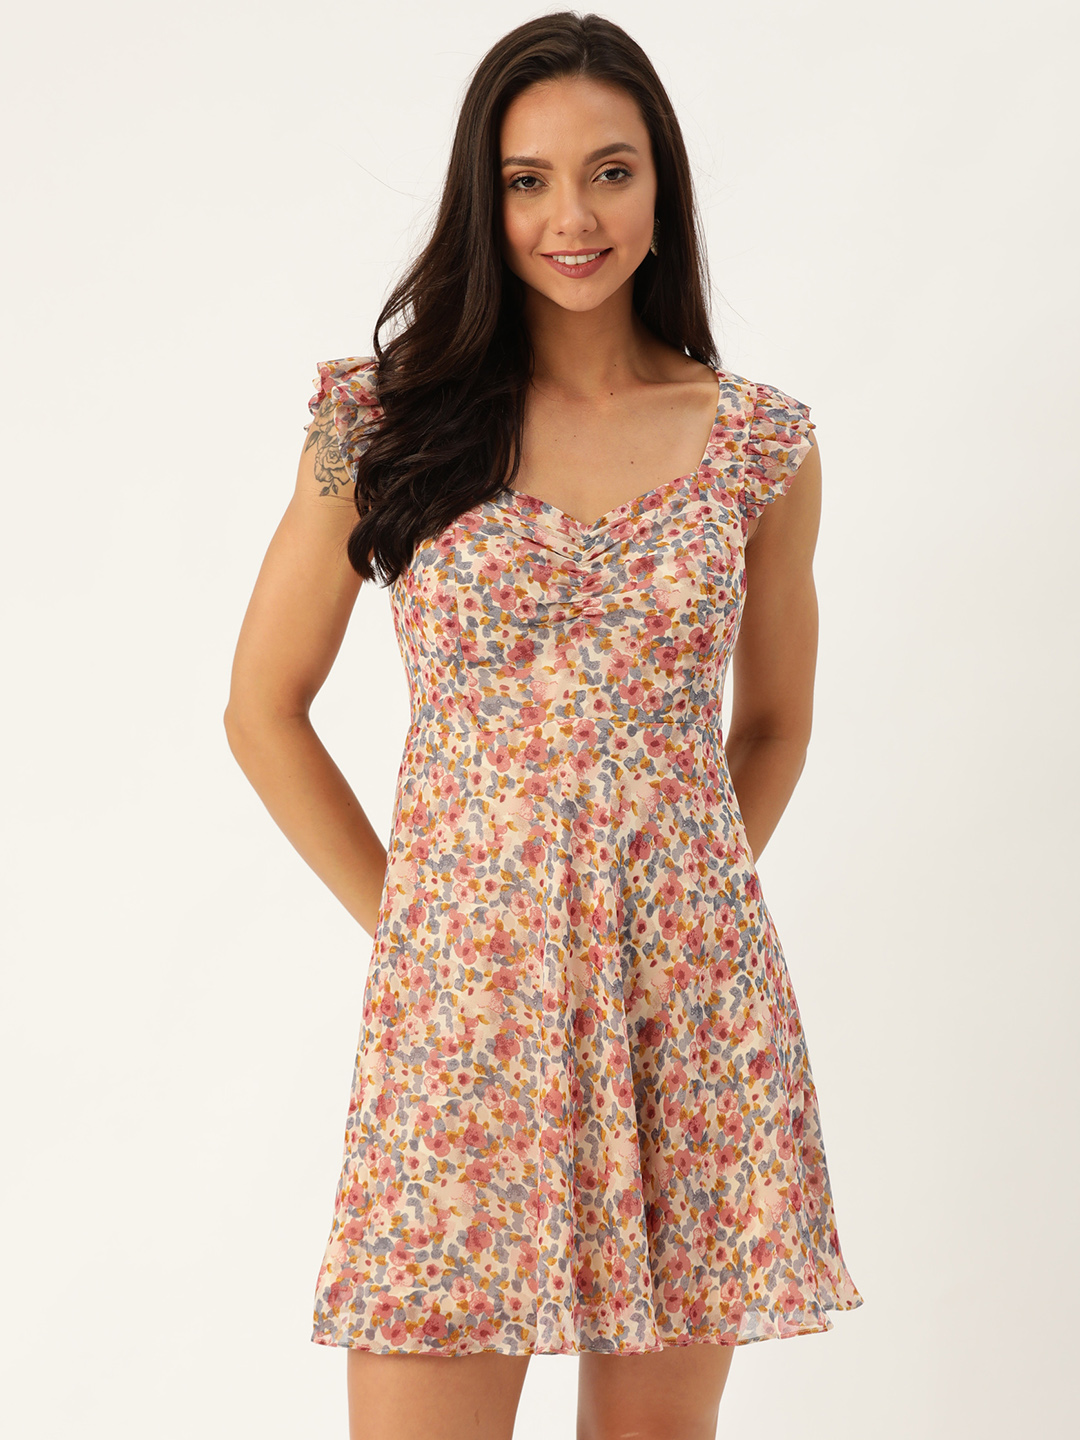 Dresses-Dressed To Frill Floral Dress1